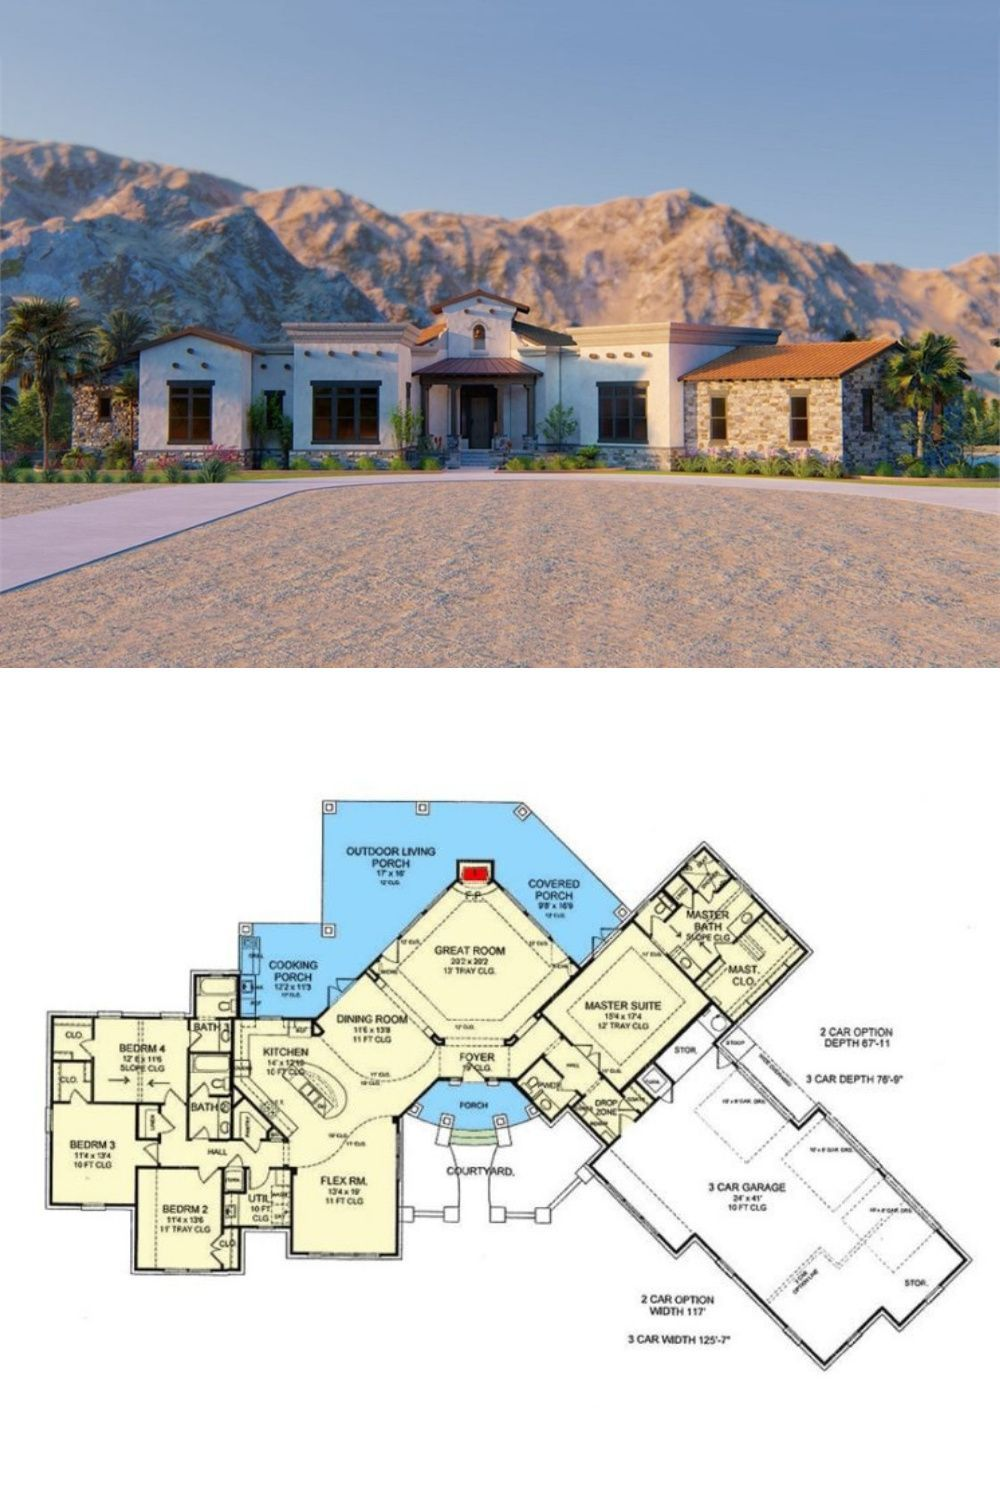 e Story 4 Bedroom Tuscan Style Santa Fe Ranch with Angled 3 Car Garage Floor Plan